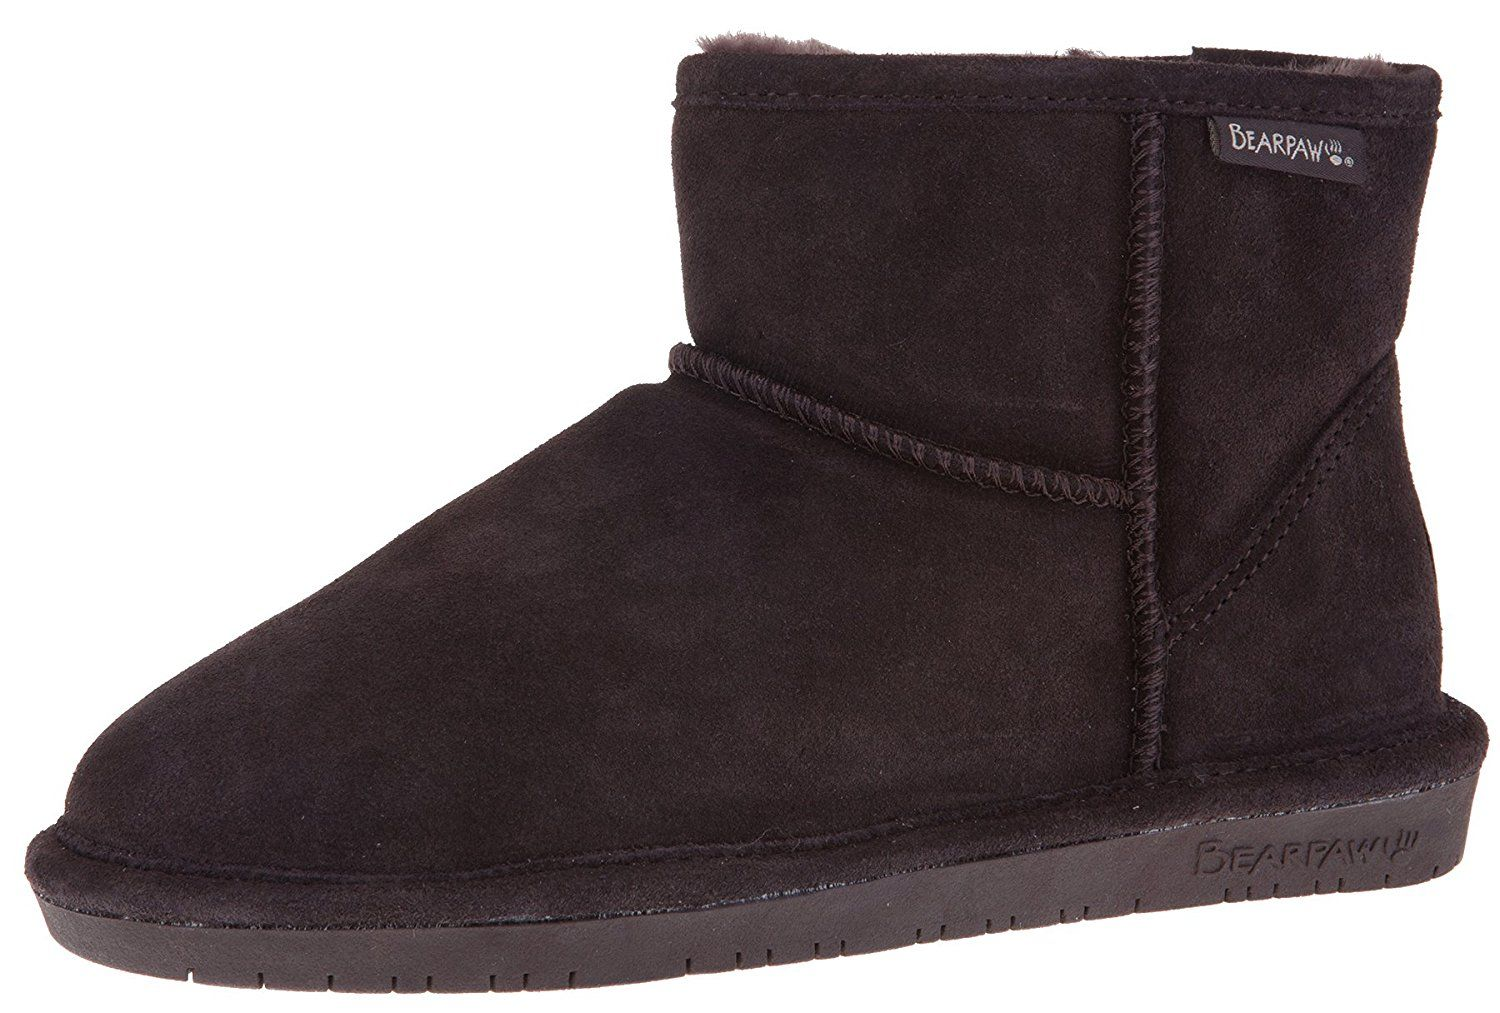 WOMEN/'S BEARPAW EMMA SHORT 608W//CHOCOLATE  SNOW WINTER BOOT